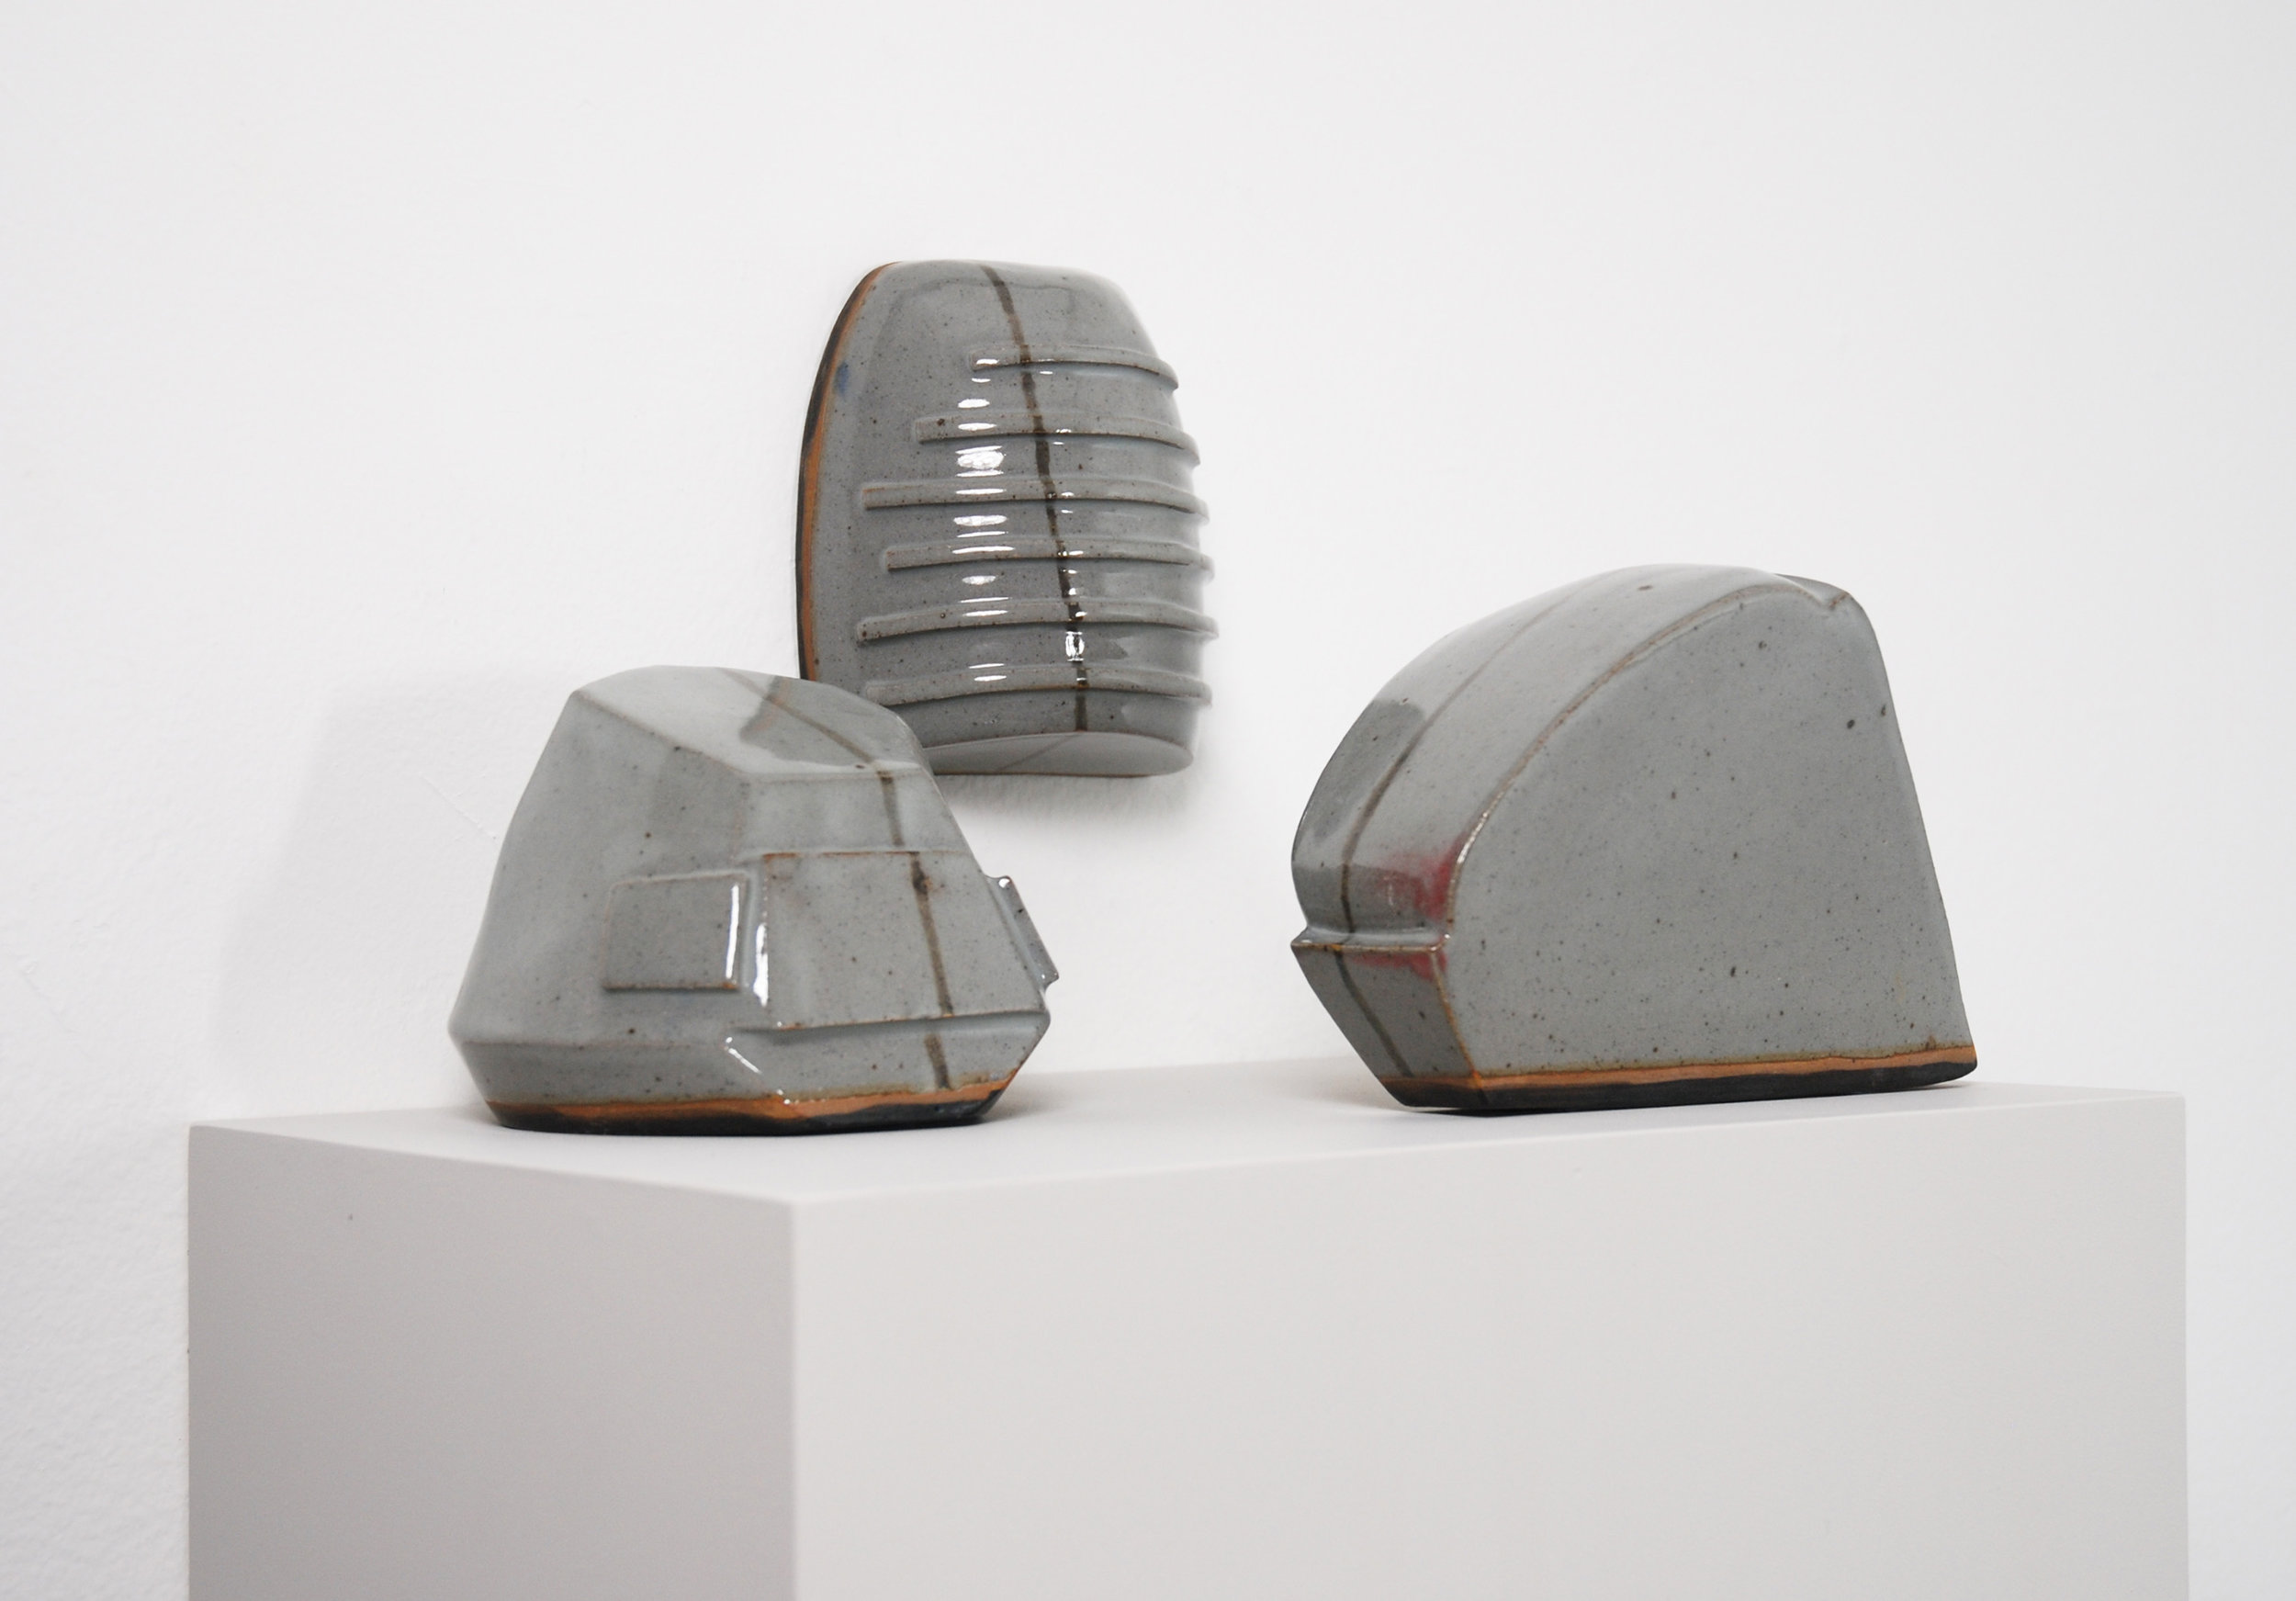 Untitled, 2011, ceramic, glaze, wood, dimensions variable